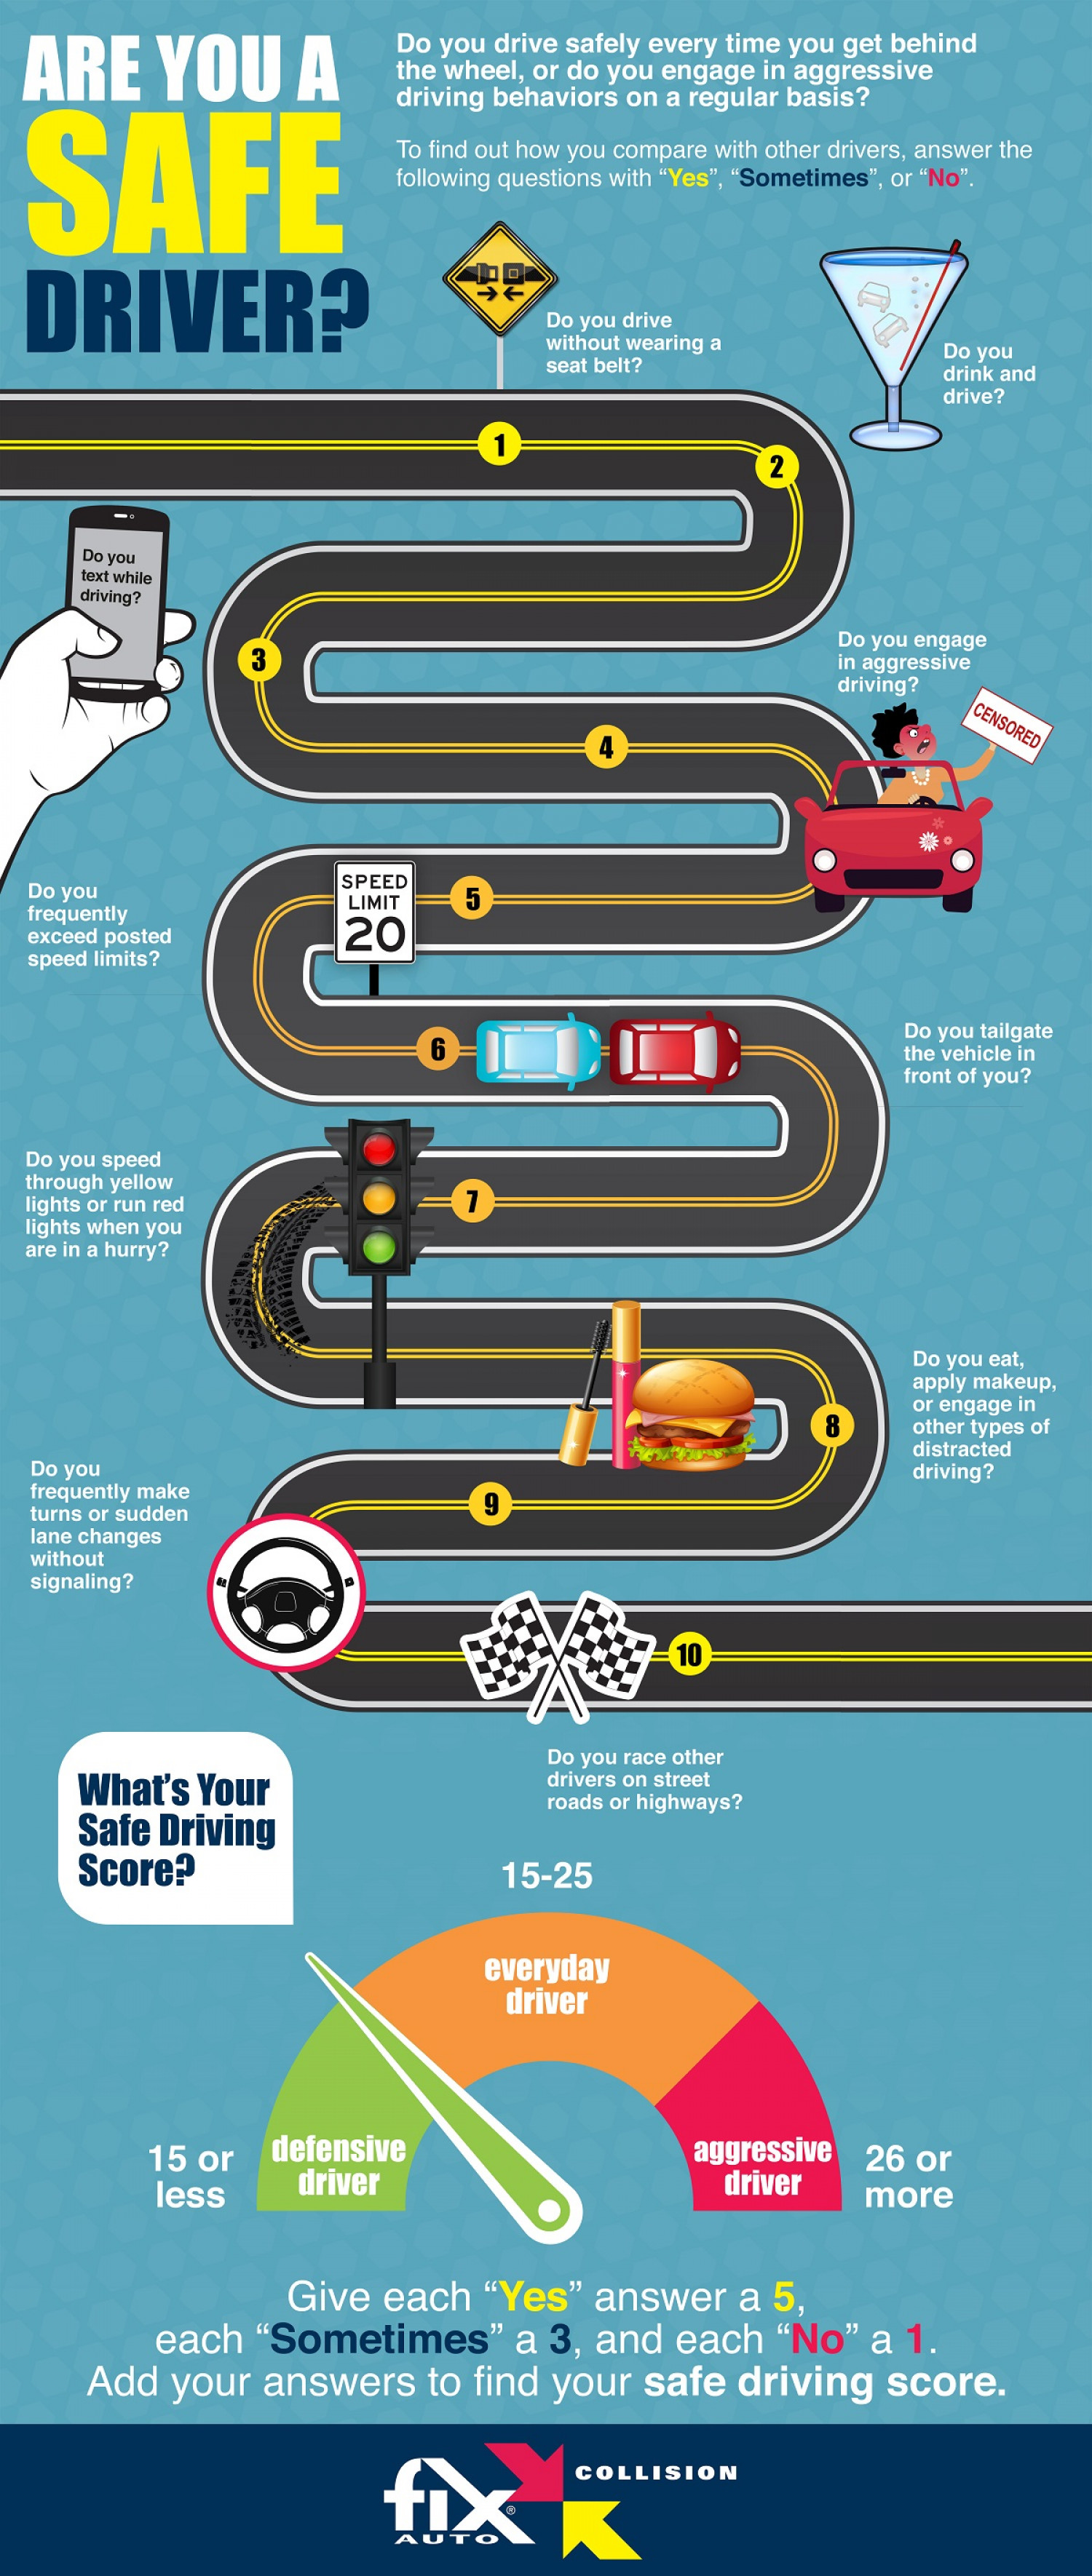 Are You a Safe Driver? Infographic